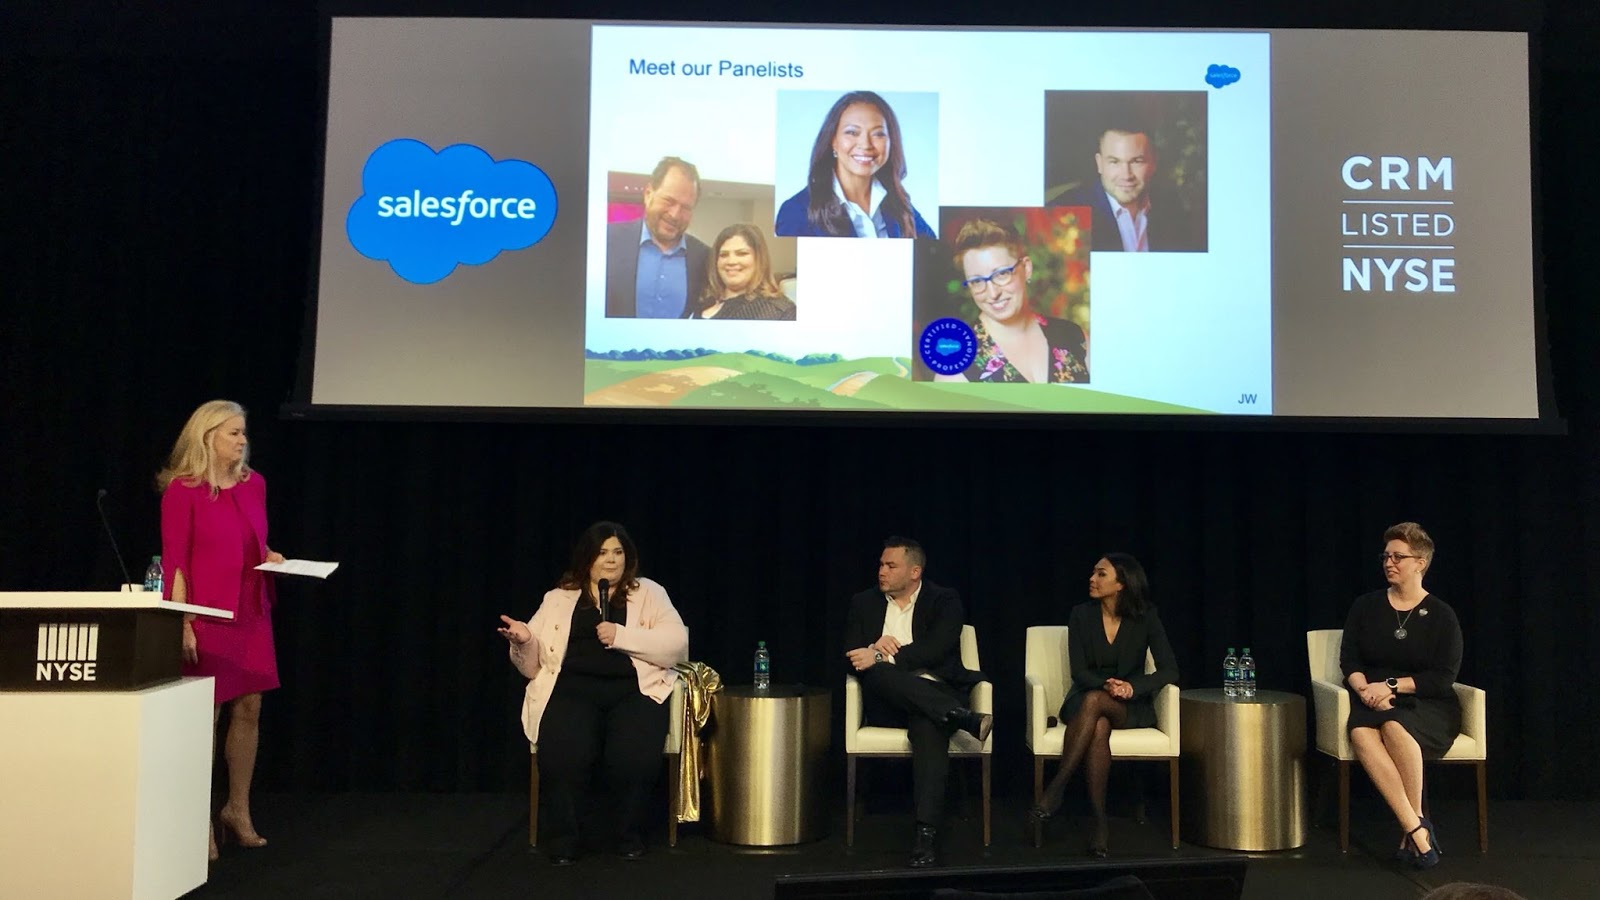 Tigh Loughhead on the Salesforce FinServ Trailblazer Panel at the NYSE with Alison Graham, Cheryl Feldman, Carrie Mantione and Sandi Zellner